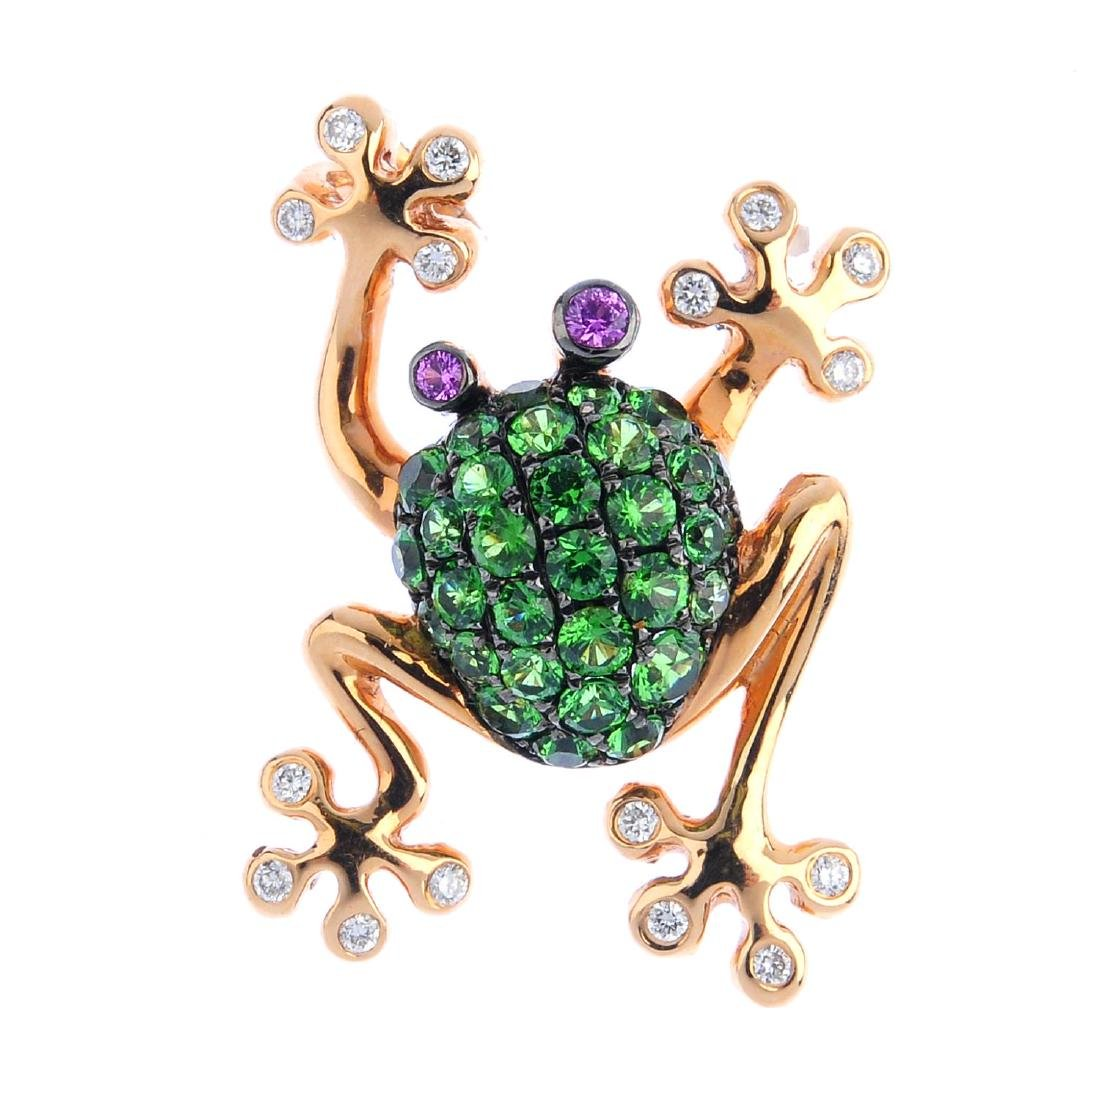 A diamond, garnet and sapphire frog pendant. The